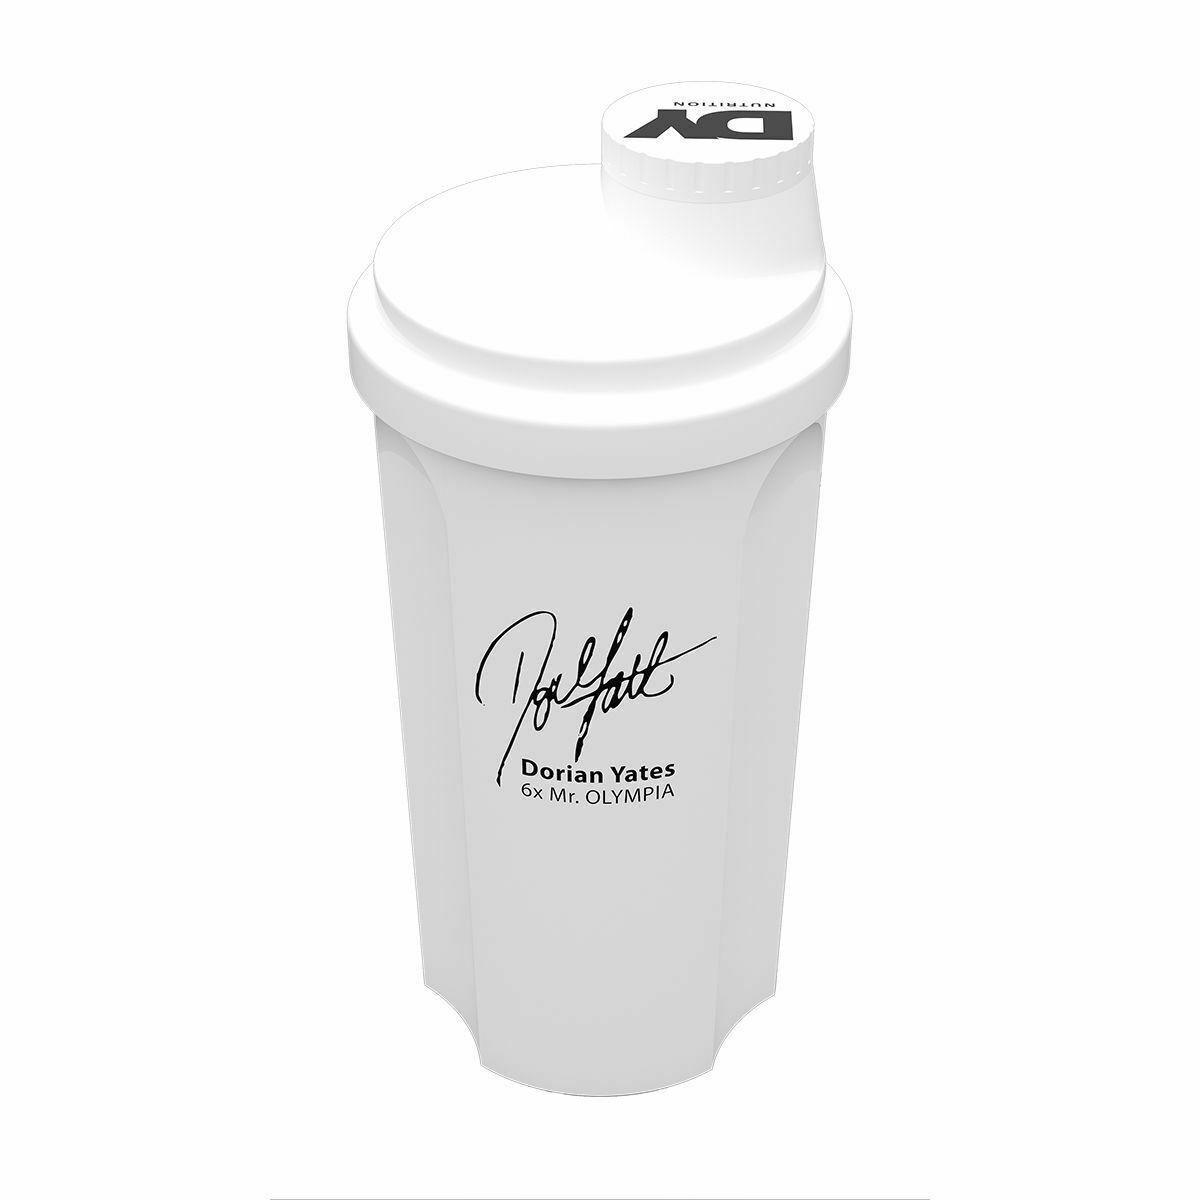 Image 5 - Dorian Yates Signature Shaker Cup DY Nutrition shaker 3 sided design in 2 colour